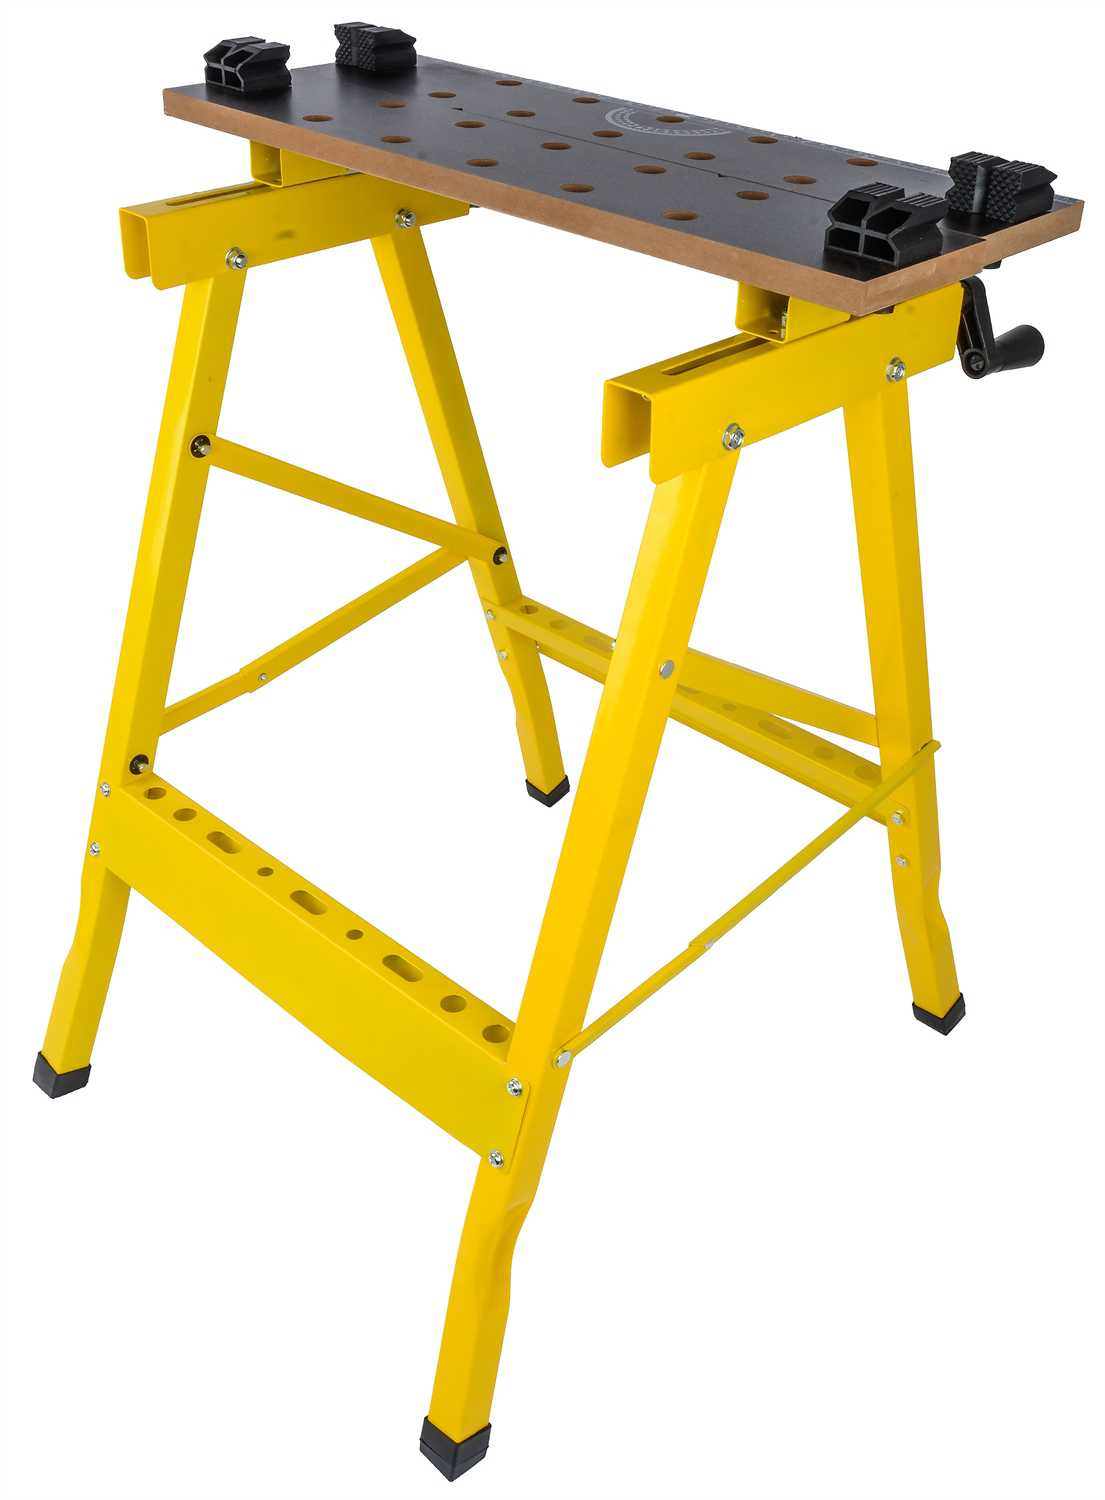 JEGS Performance Products 80171 Portable Work Bench Dimensions: 21.89 x 25 x 30.